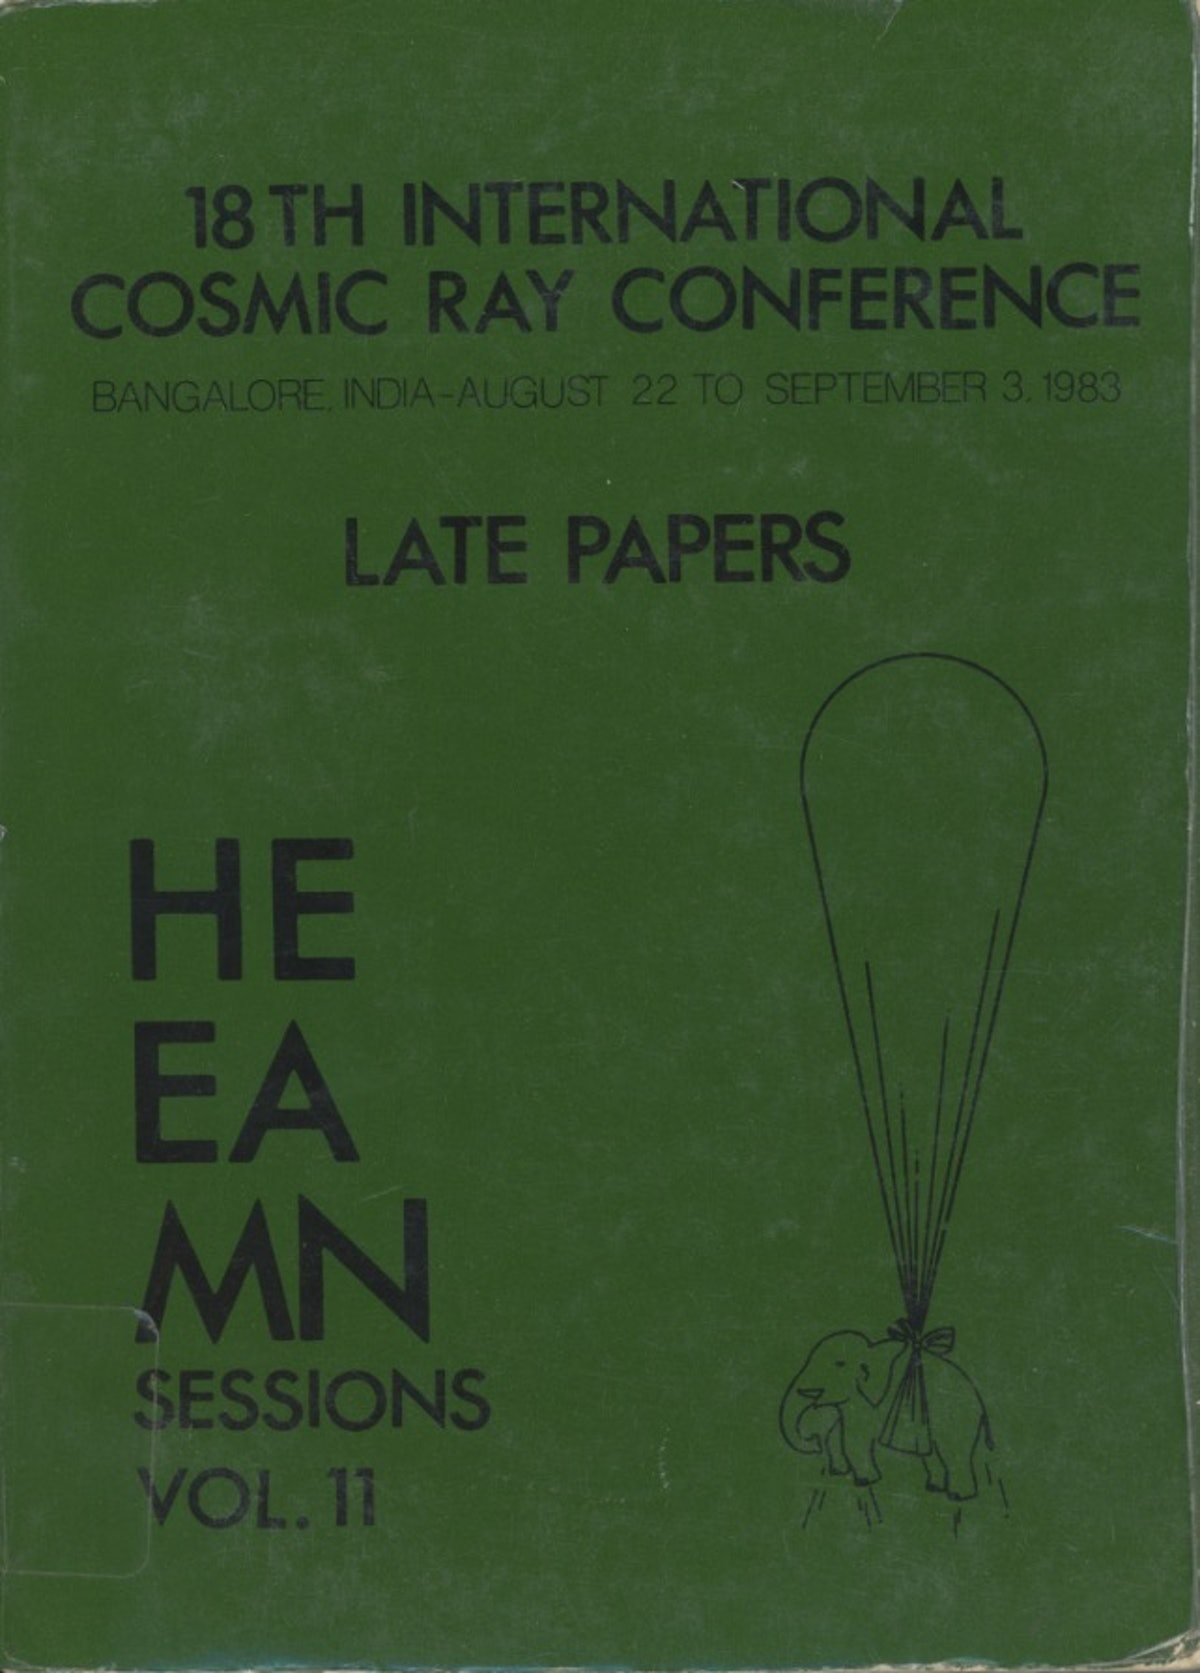 18th International Cosmic Ray Conference Late Papers